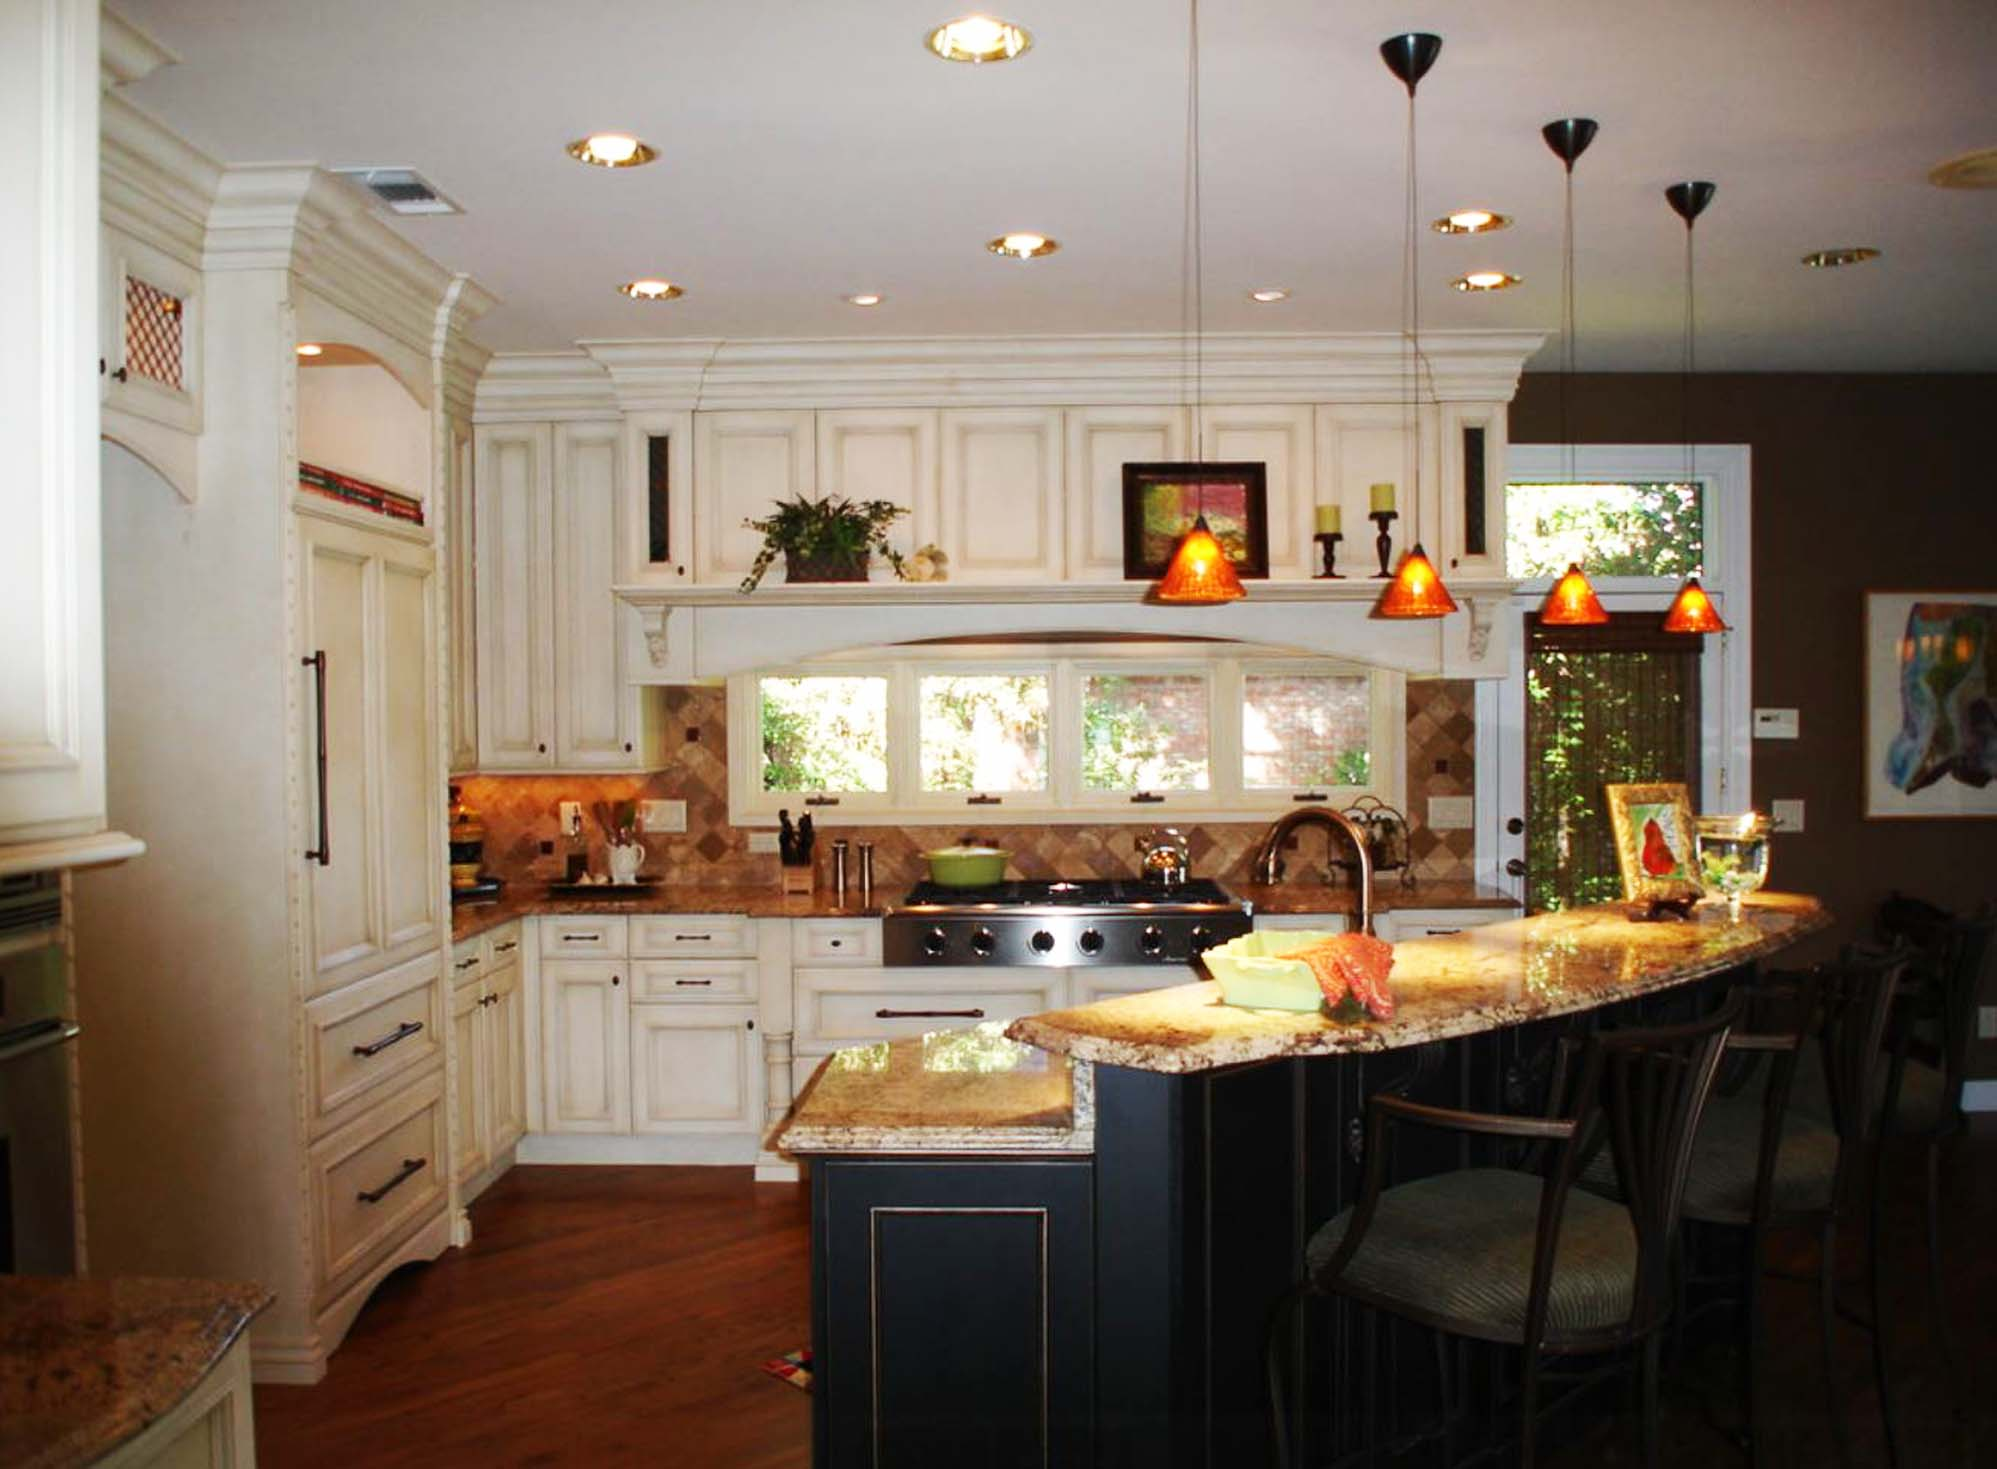 If You Re Interested In Remodeling Your Home Contact Us To Learn